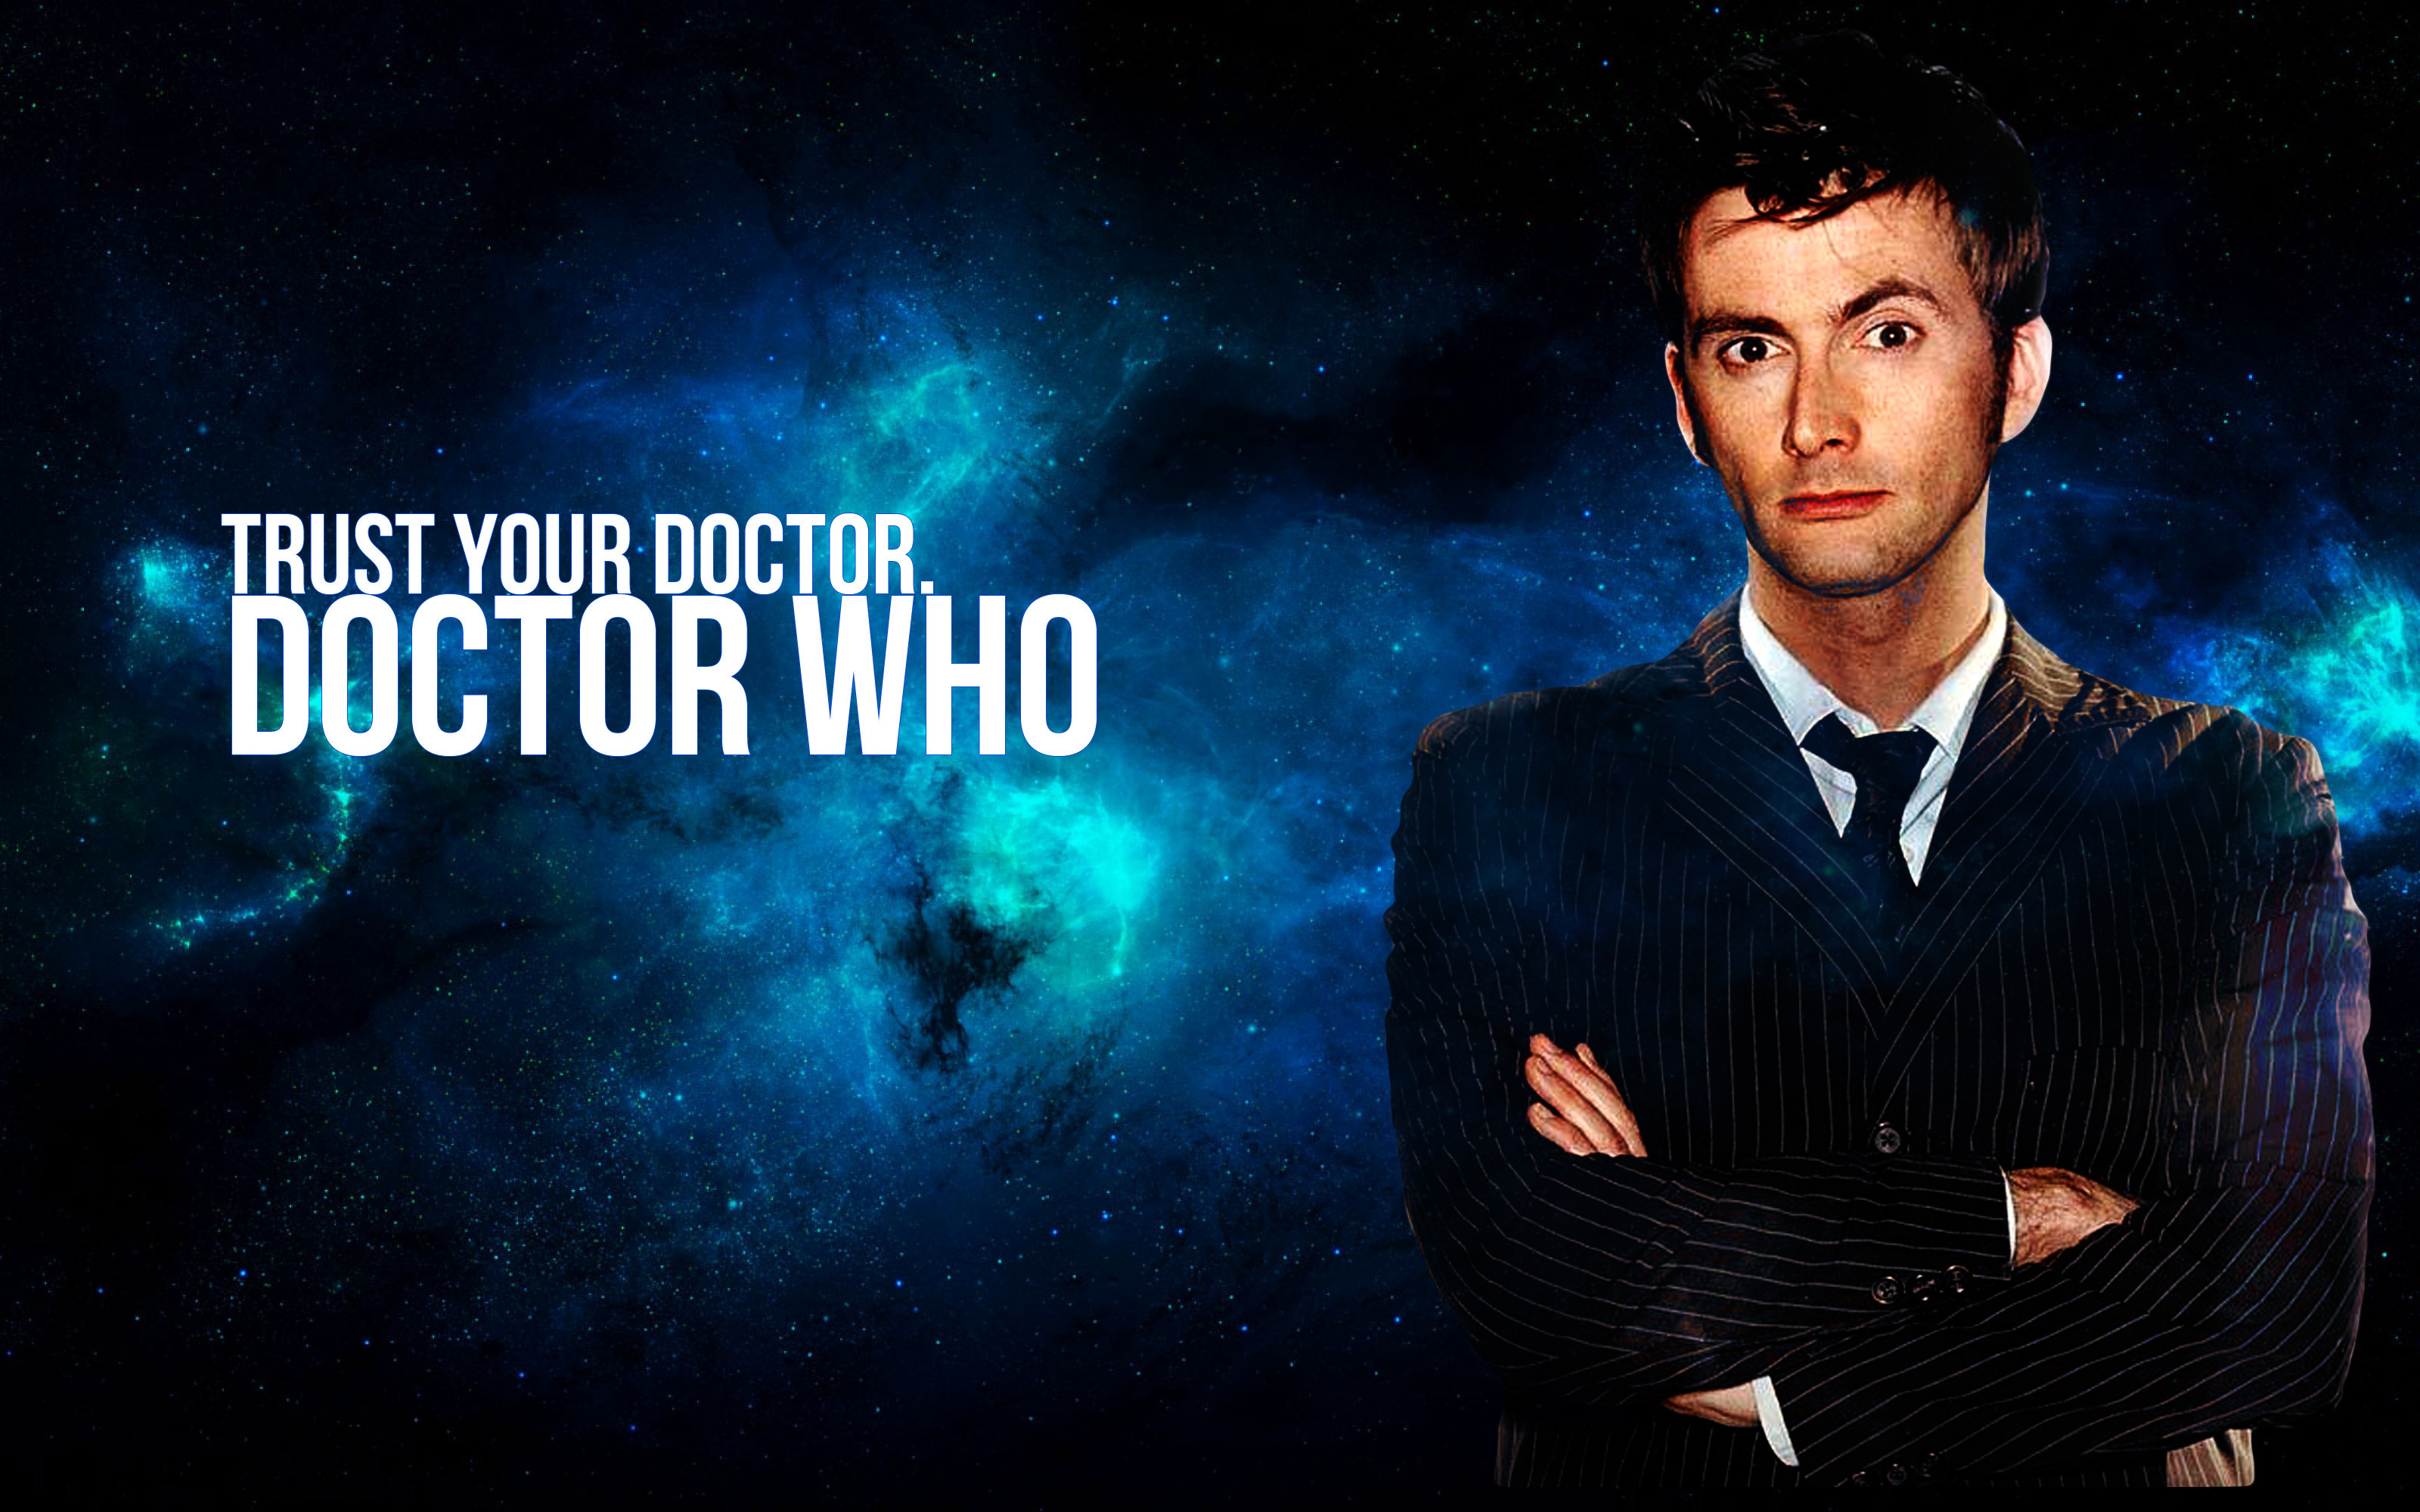 3200x2000 Tenth Wallpaper by RasumuZ Doctor Who: Trust Your Doctor. Tenth Wallpaper  by RasumuZ